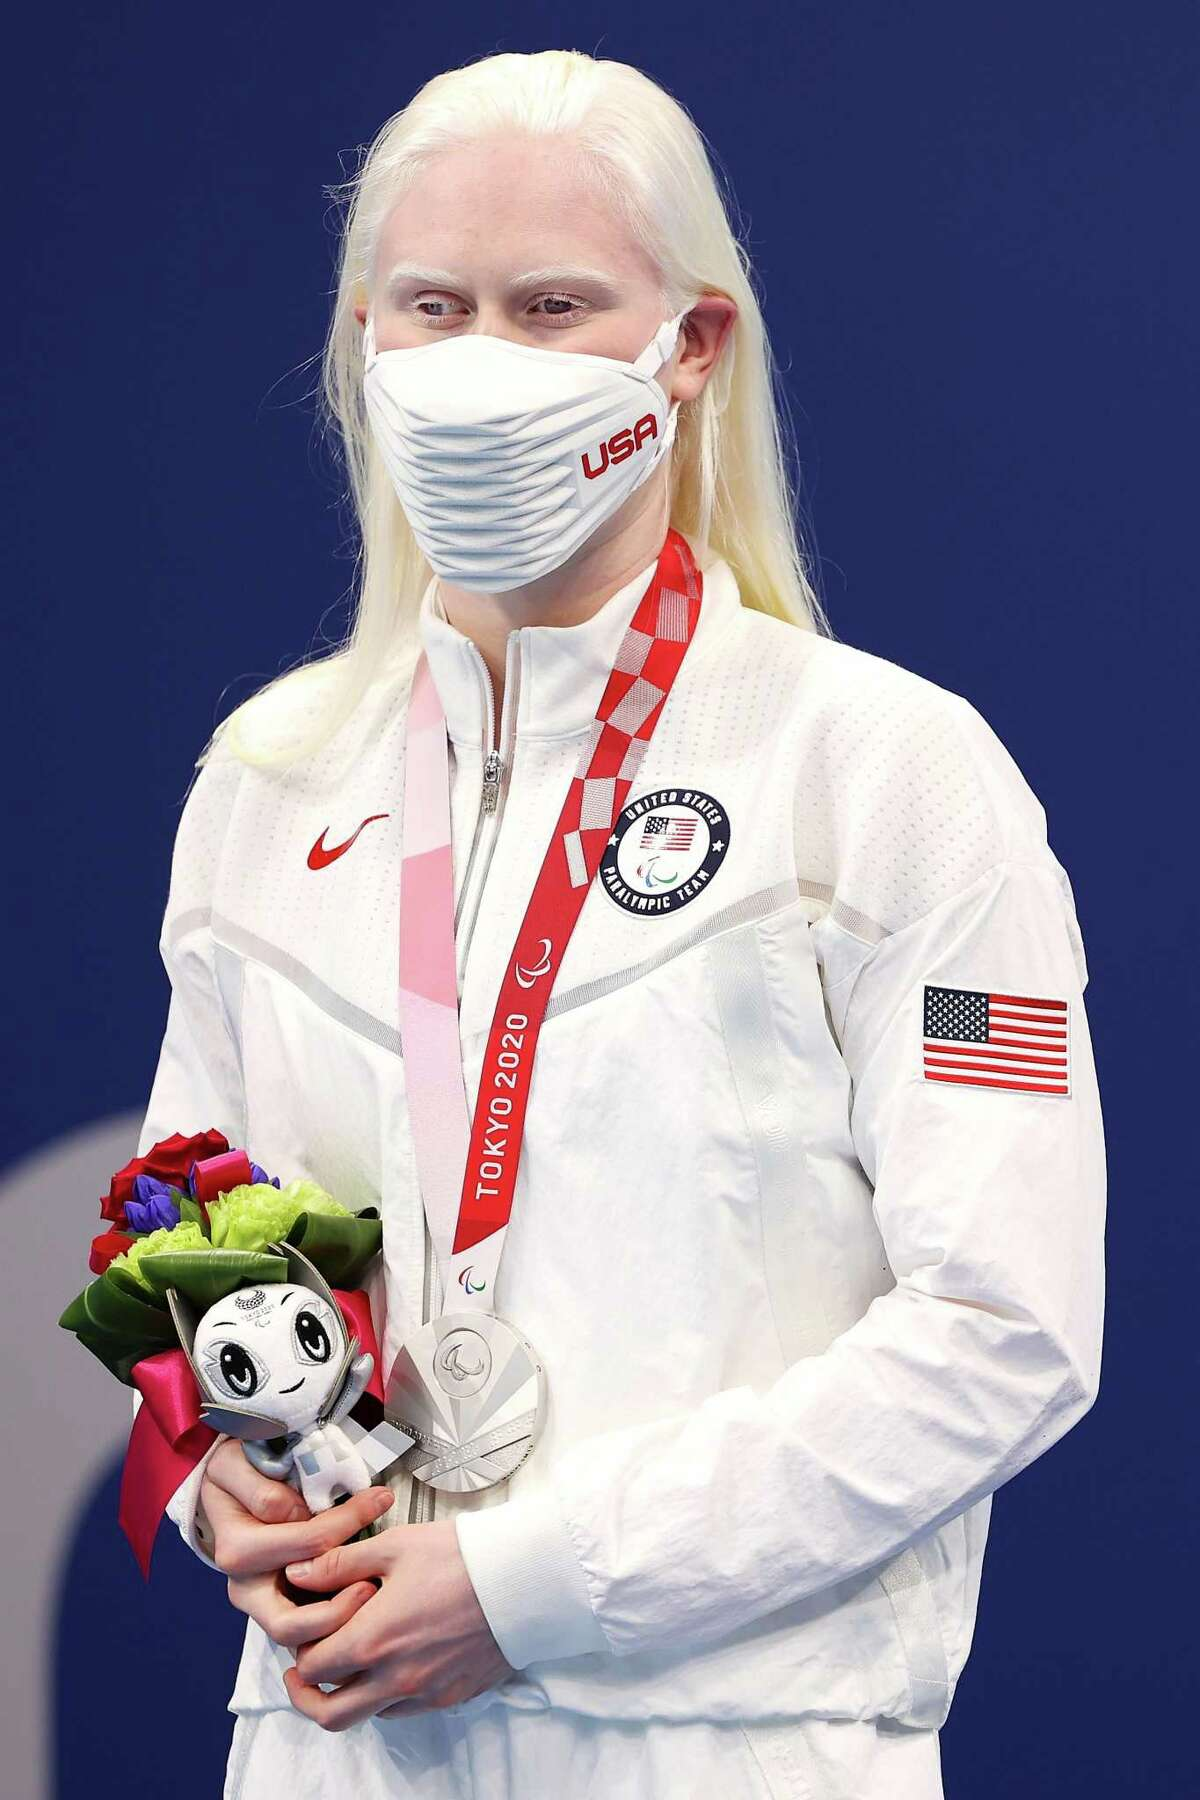 TOKYO, JAPAN - AUGUST 30: Silver medalist Colleen Young of Team United States poses in the podium of Women's 200m Individual Medley - SM13 on day 6 of the Tokyo 2020 Paralympic Games at Tokyo Aquatics Centre on August 30, 2021 in Tokyo, Japan. (Photo by Lintao Zhang/Getty Images)